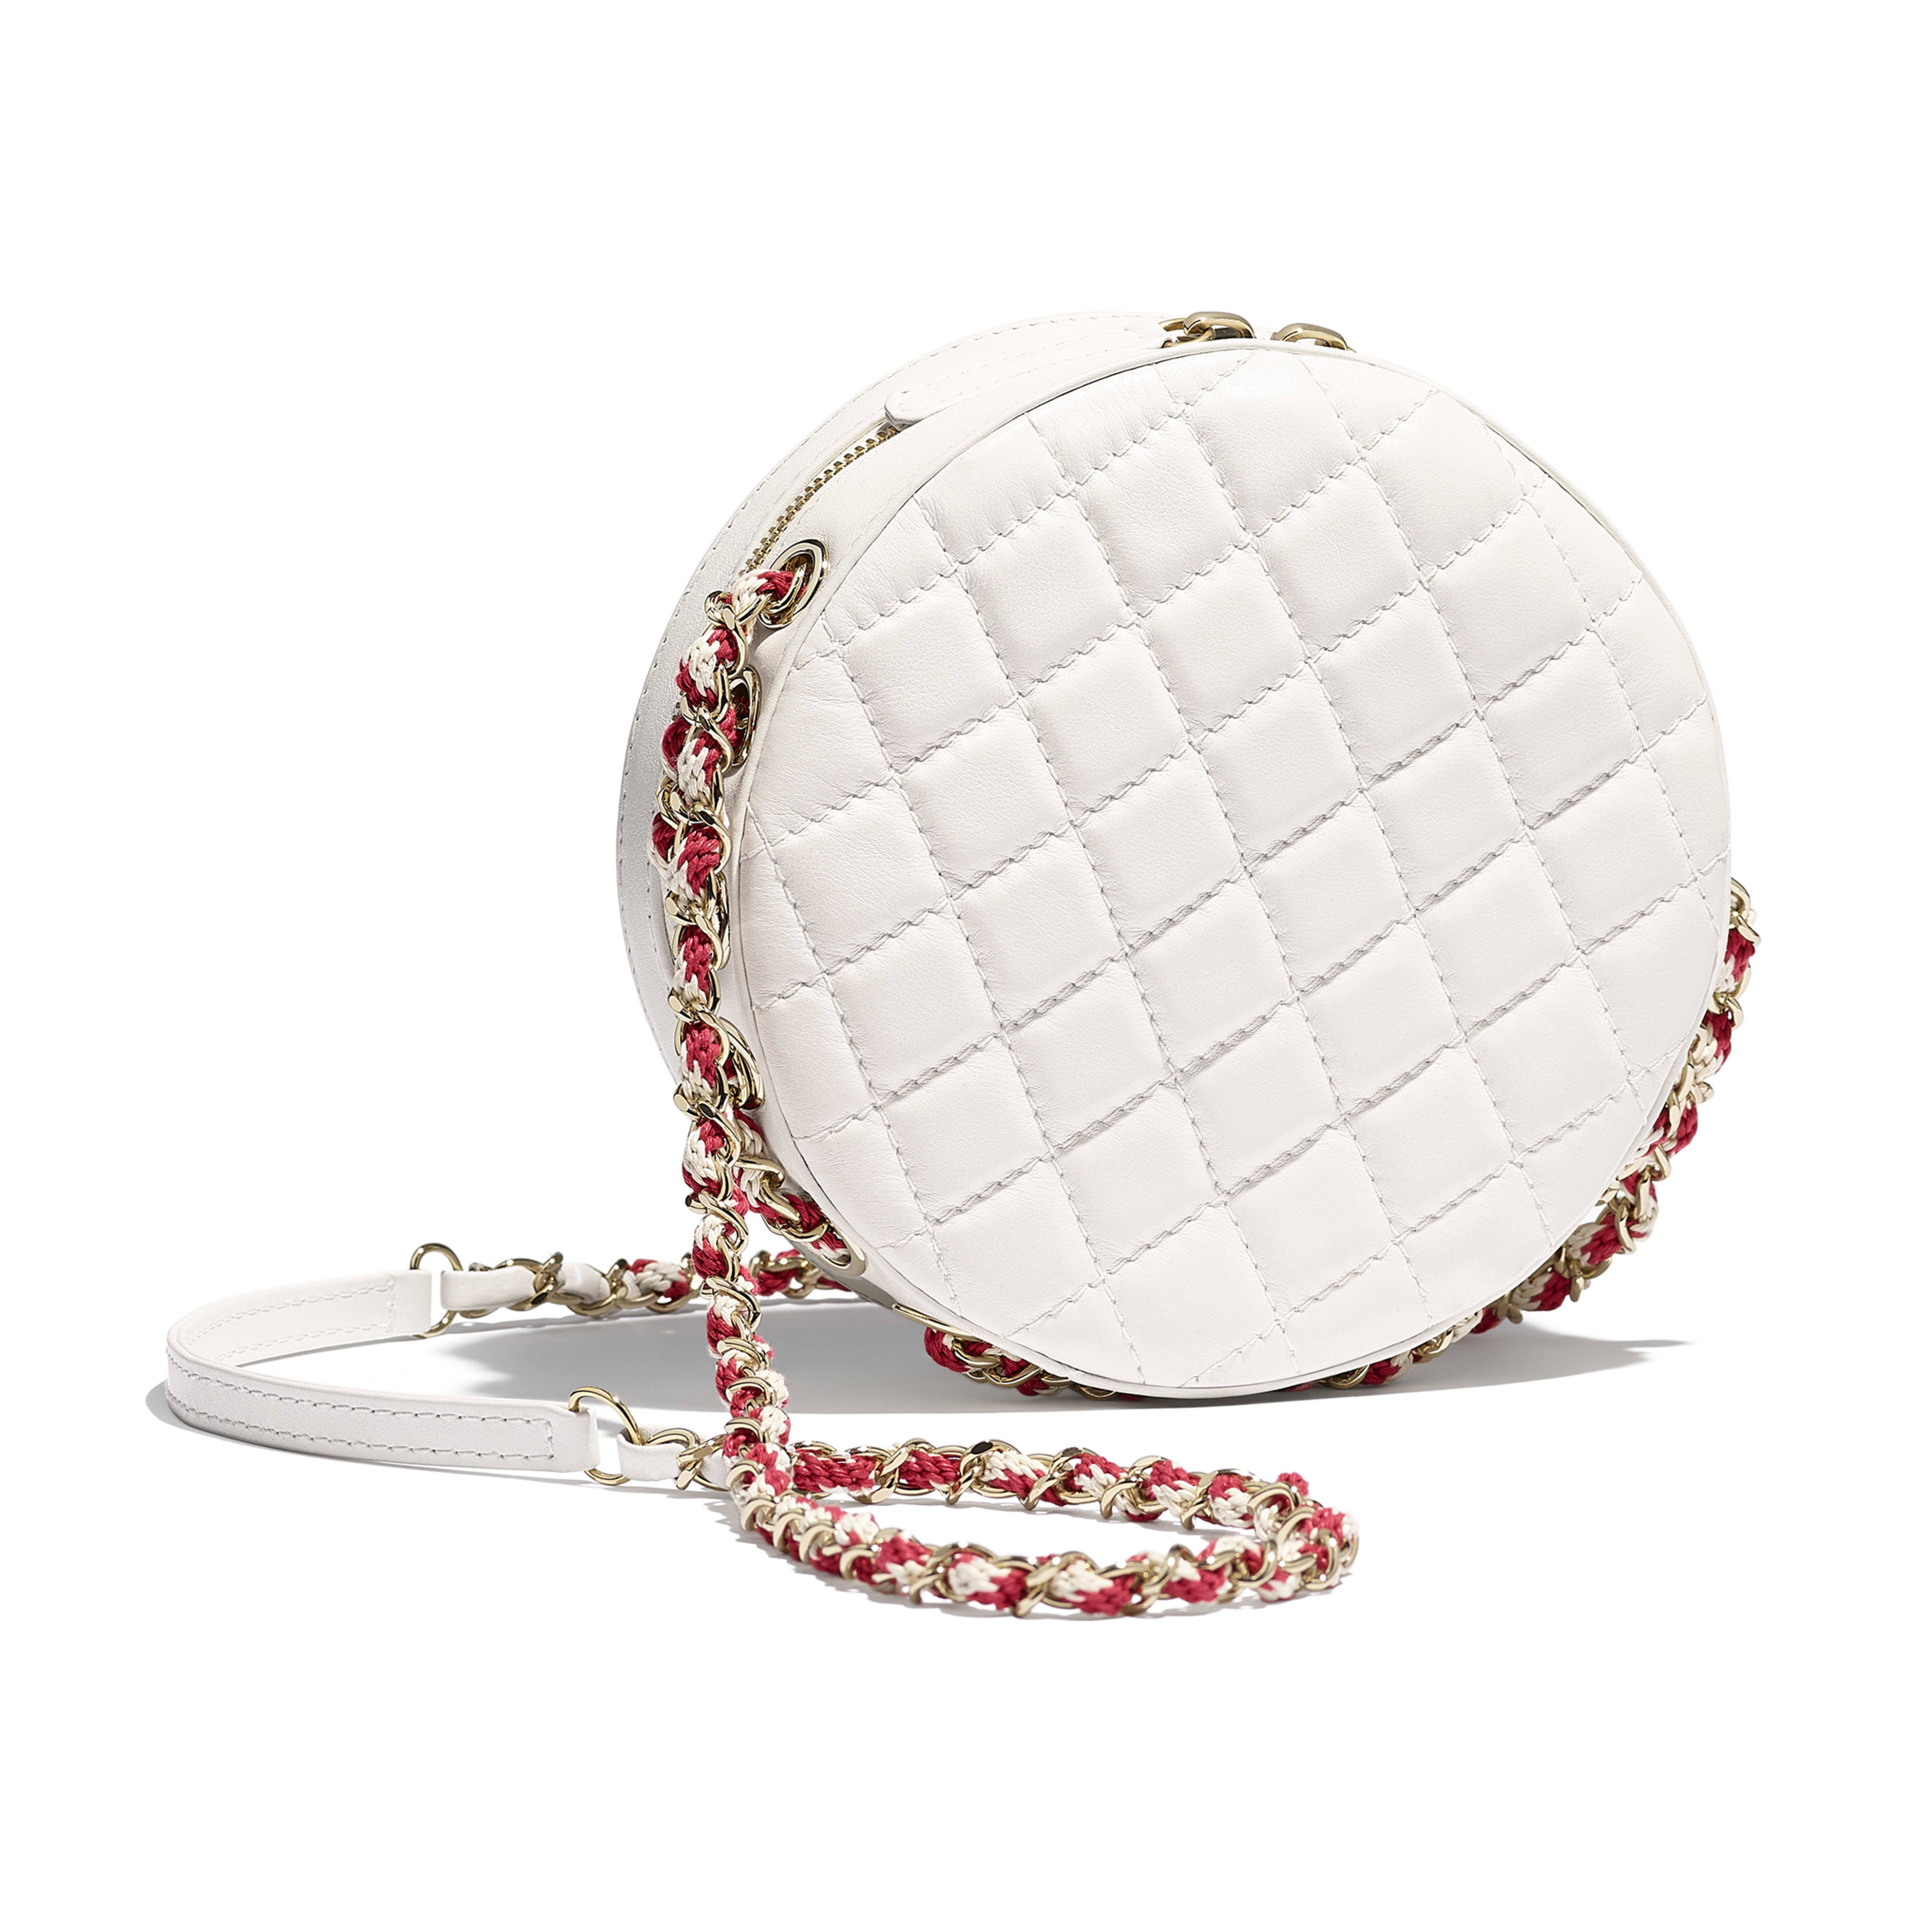 Small Round Bag - Red & White - Lambskin & Gold-Tone Metal - Alternative view - see full sized version